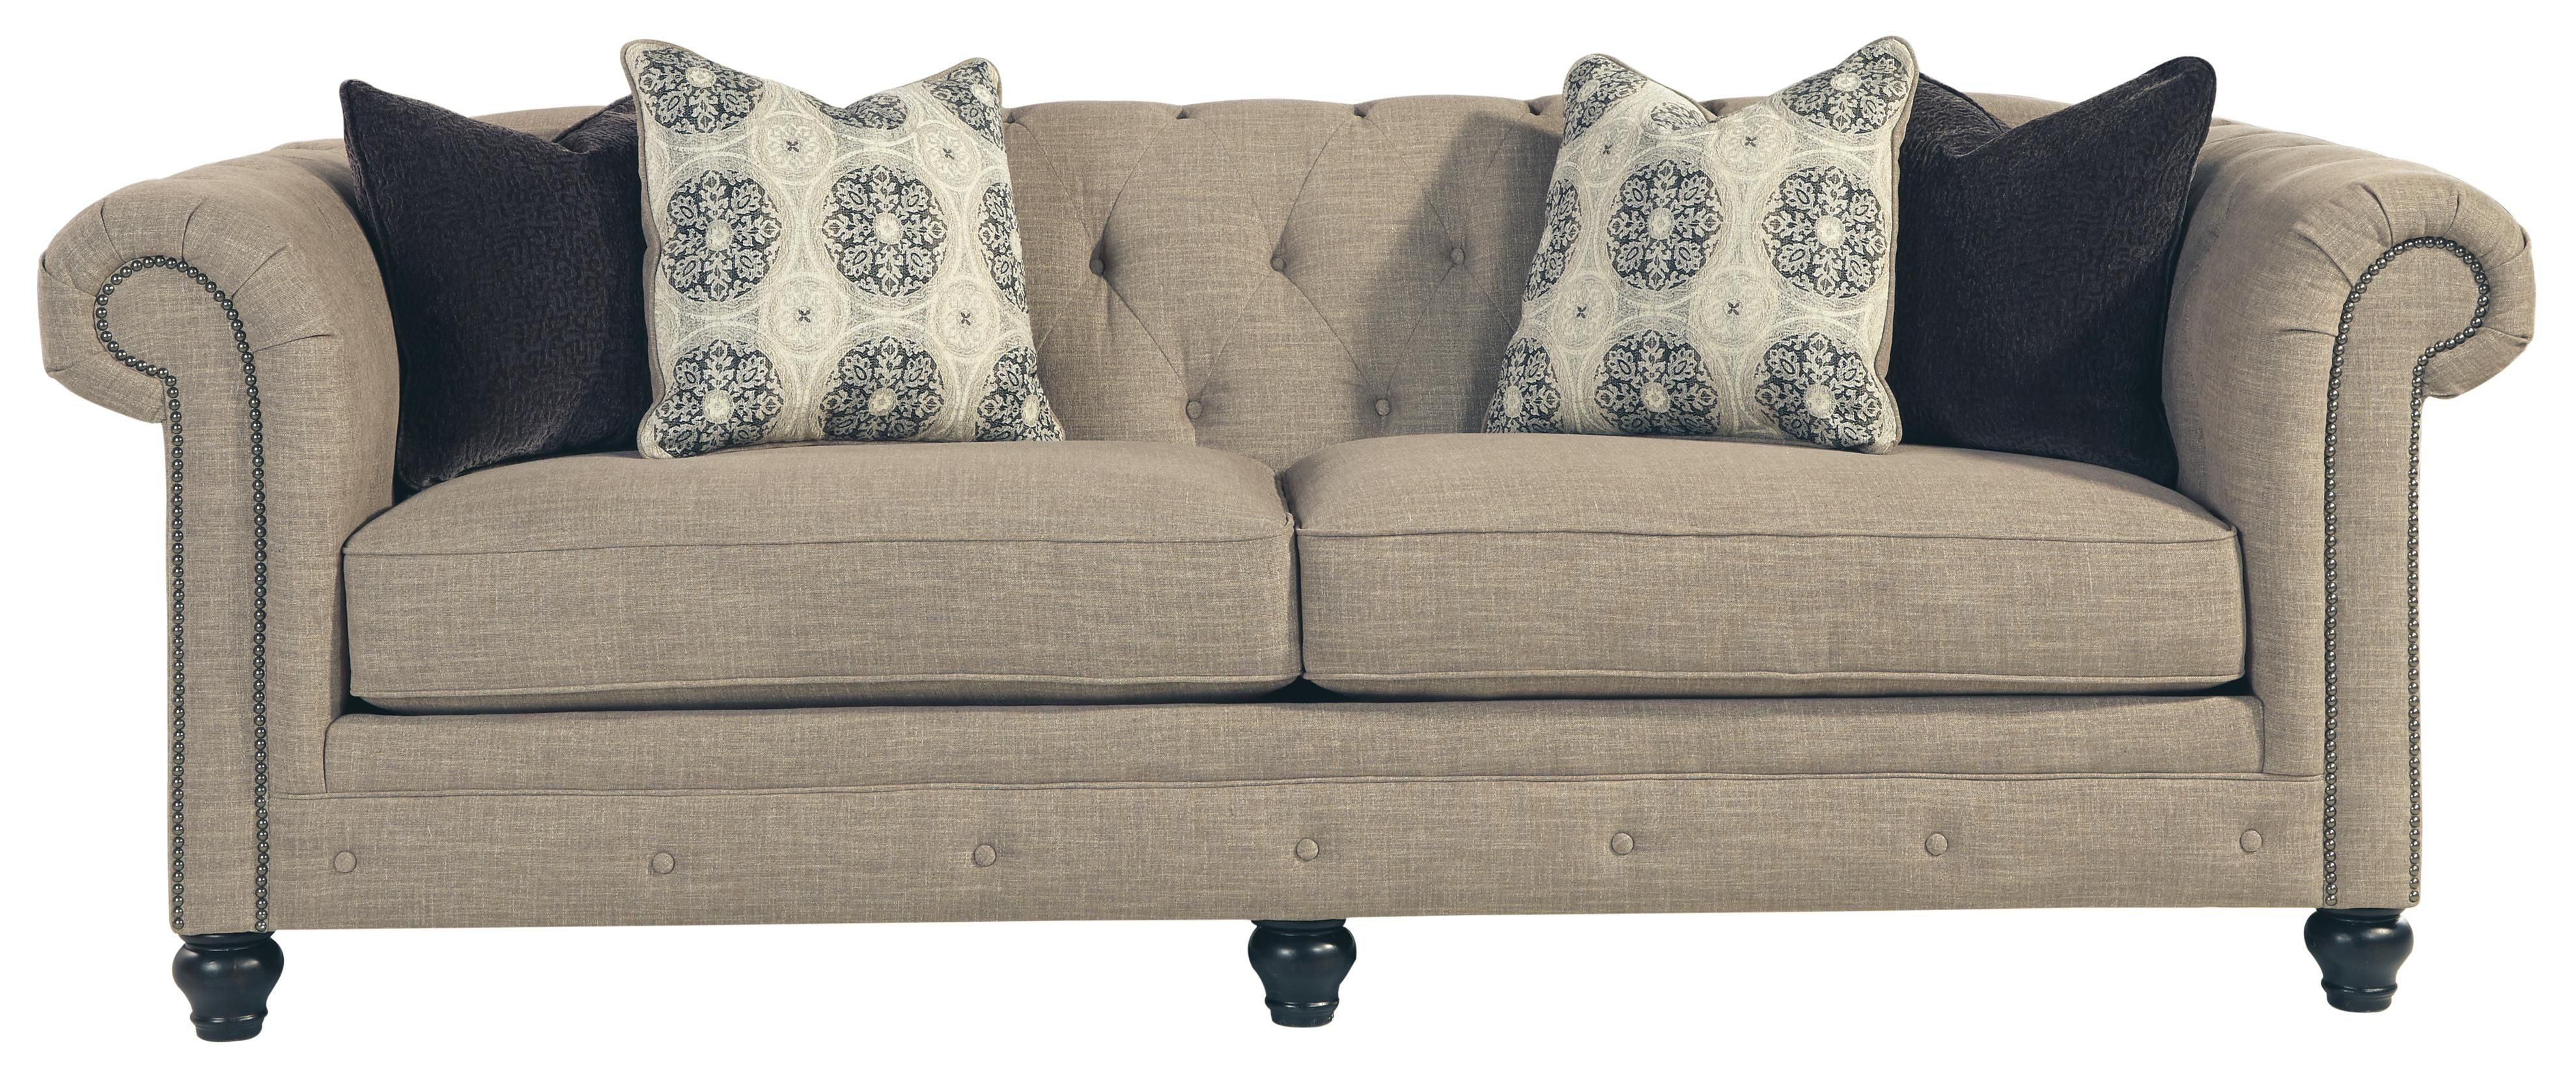 Sofa azlyn transitional chesterfield sofa with linenblend fabric by